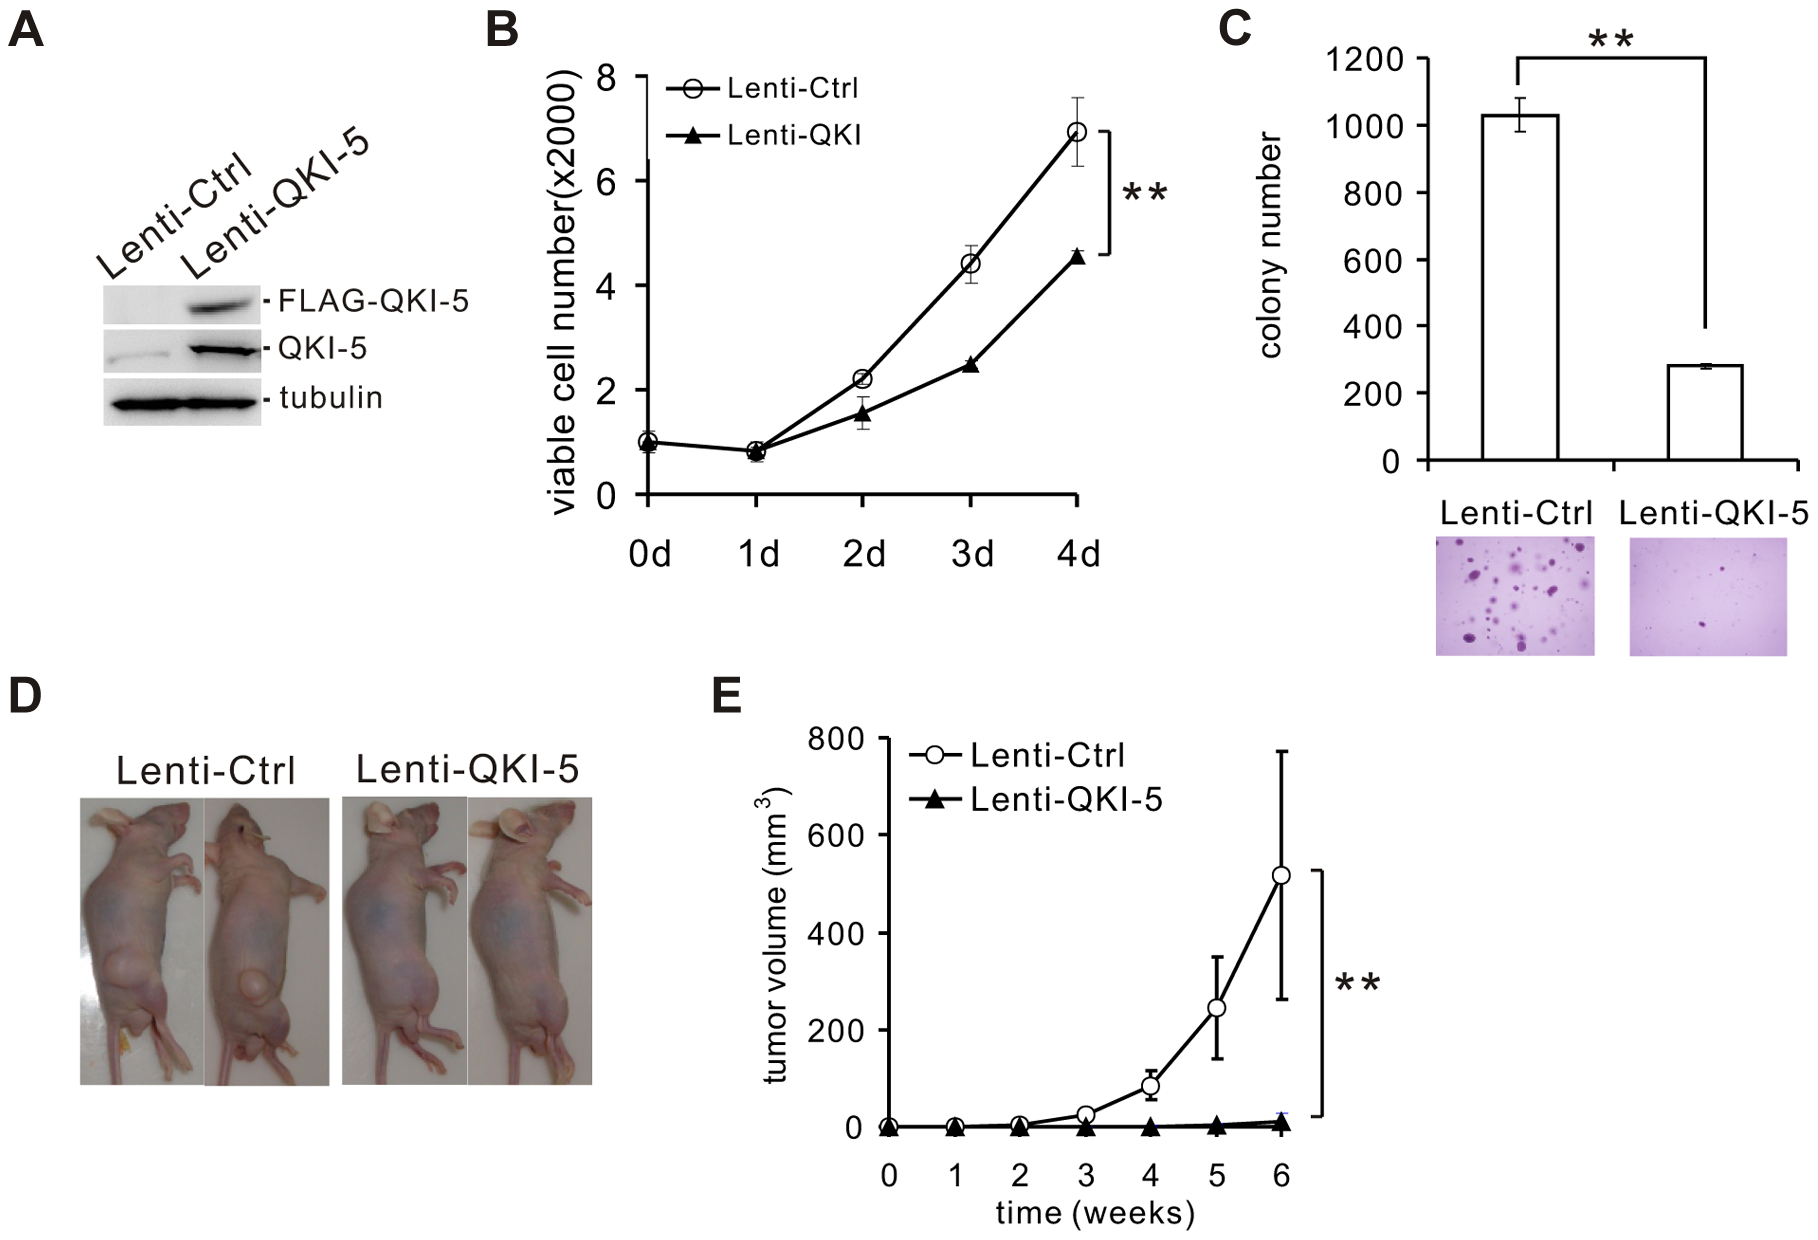 QKI-5 inhibits lung cancer cell proliferation and transformation.